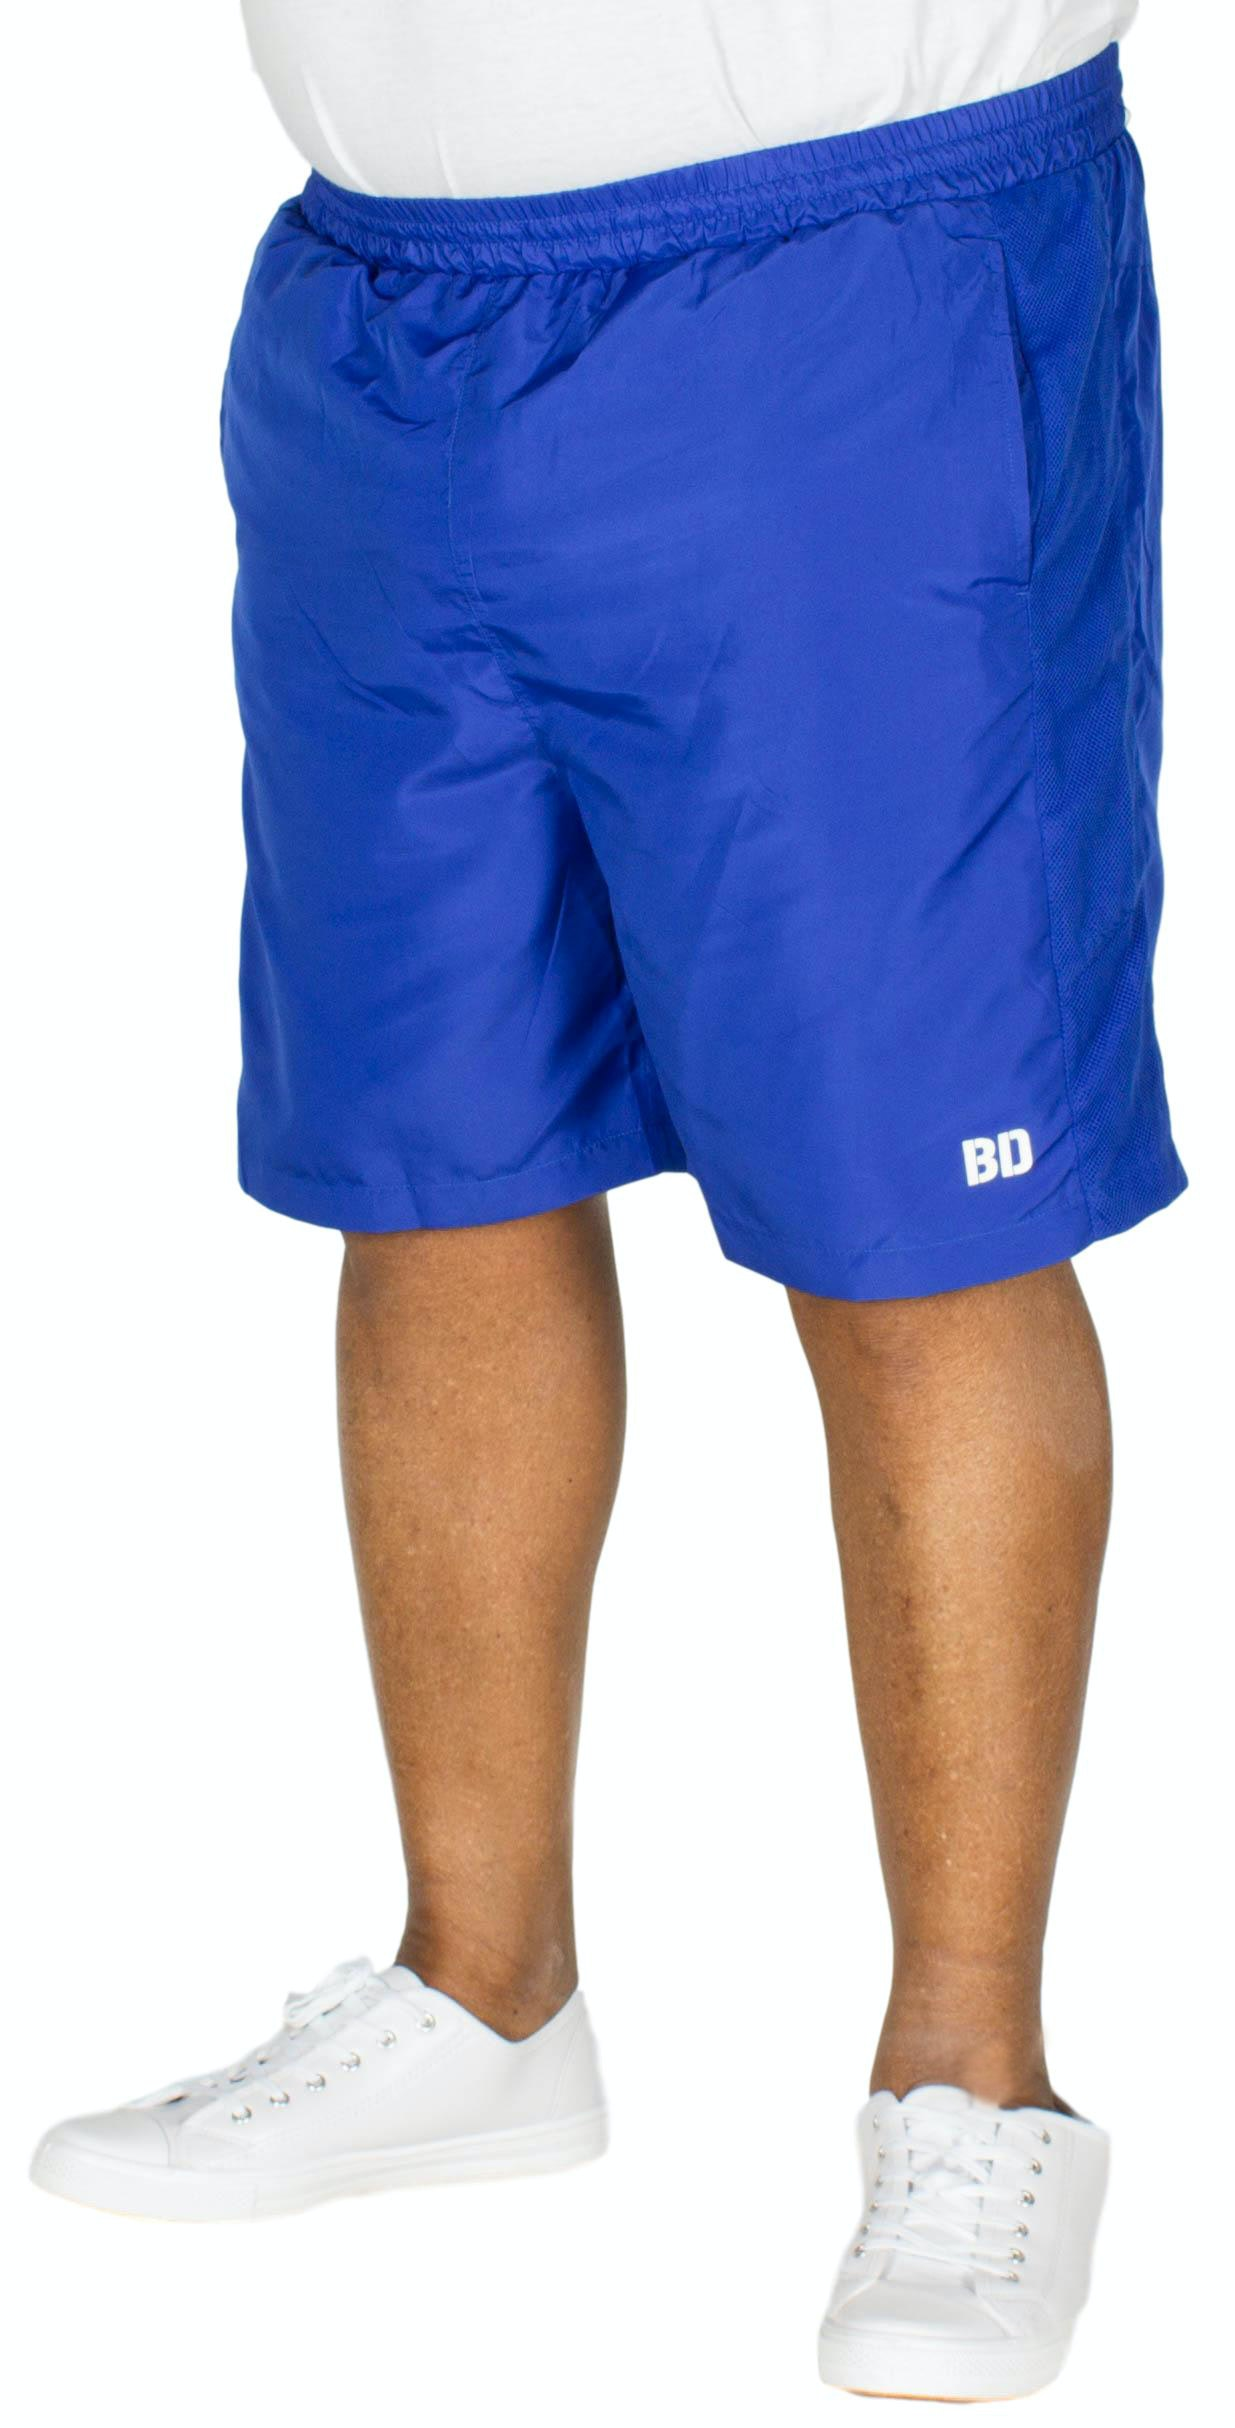 Bigdude Mesh Panel Gym Shorts Royal Blue